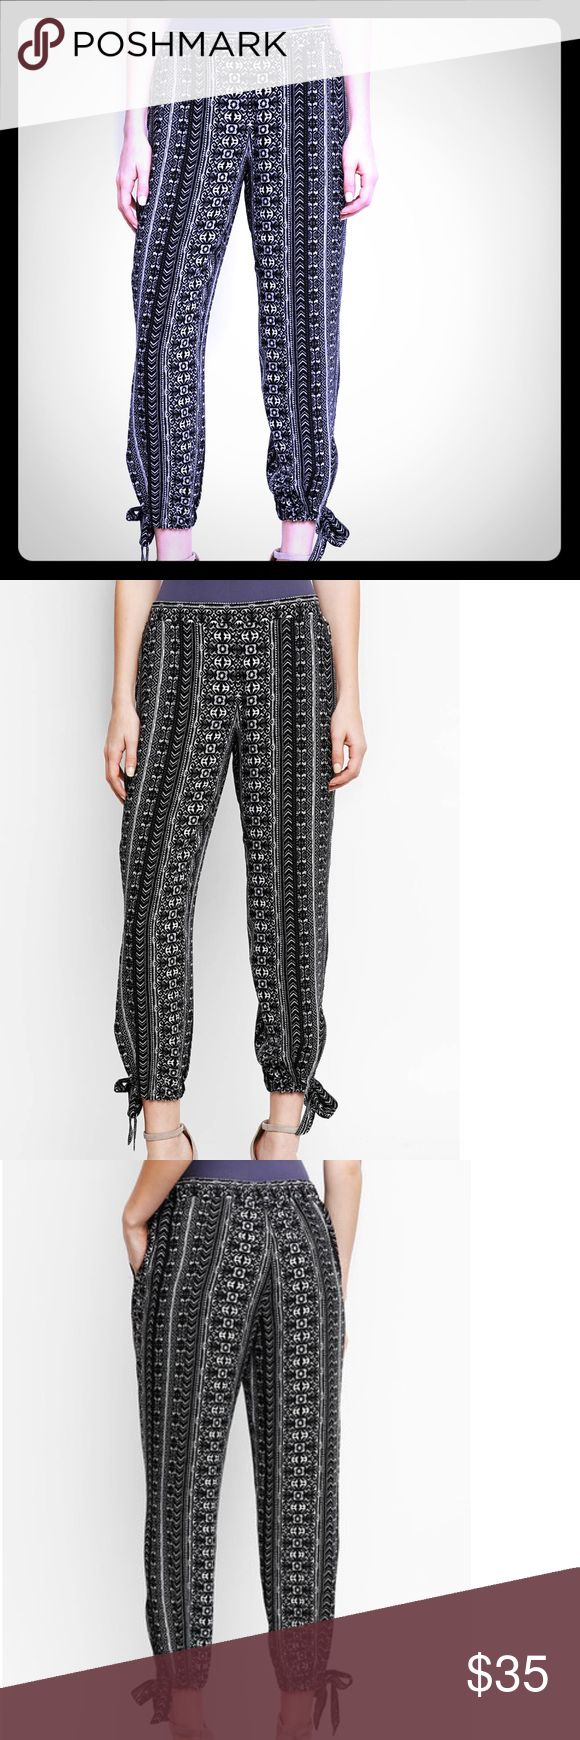 NWT: BOHO PRINT JOGGERS FROM SOUTH MOON UNDER Brand new! These pants are a super fun black & white geometric print. They are a jogger style pant with cute ankle ties.   The brand is Abbeline and they are from South Moon Under.  They are new with tags- but I have to say the tag looks battered and was obviously reattached.  I think this was done by customer service because they arrived this way when I ordered them.  I just want to mention that for full disclosure even though it doesn't matter…